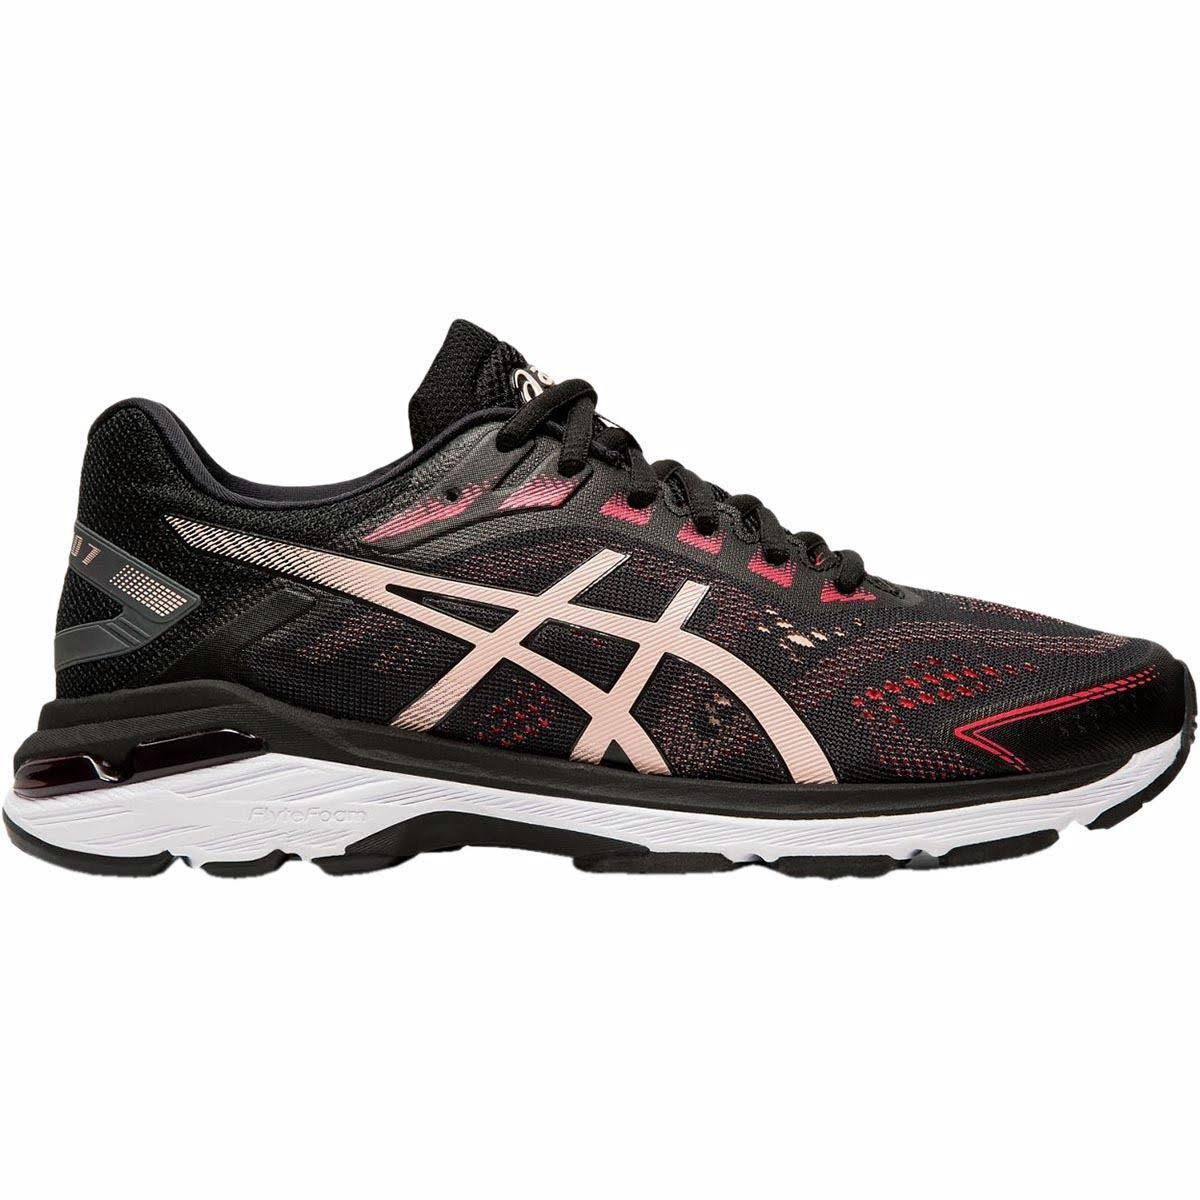 Asics GT-2000 7 Running Shoe - Women's Black/Breeze, 8.5